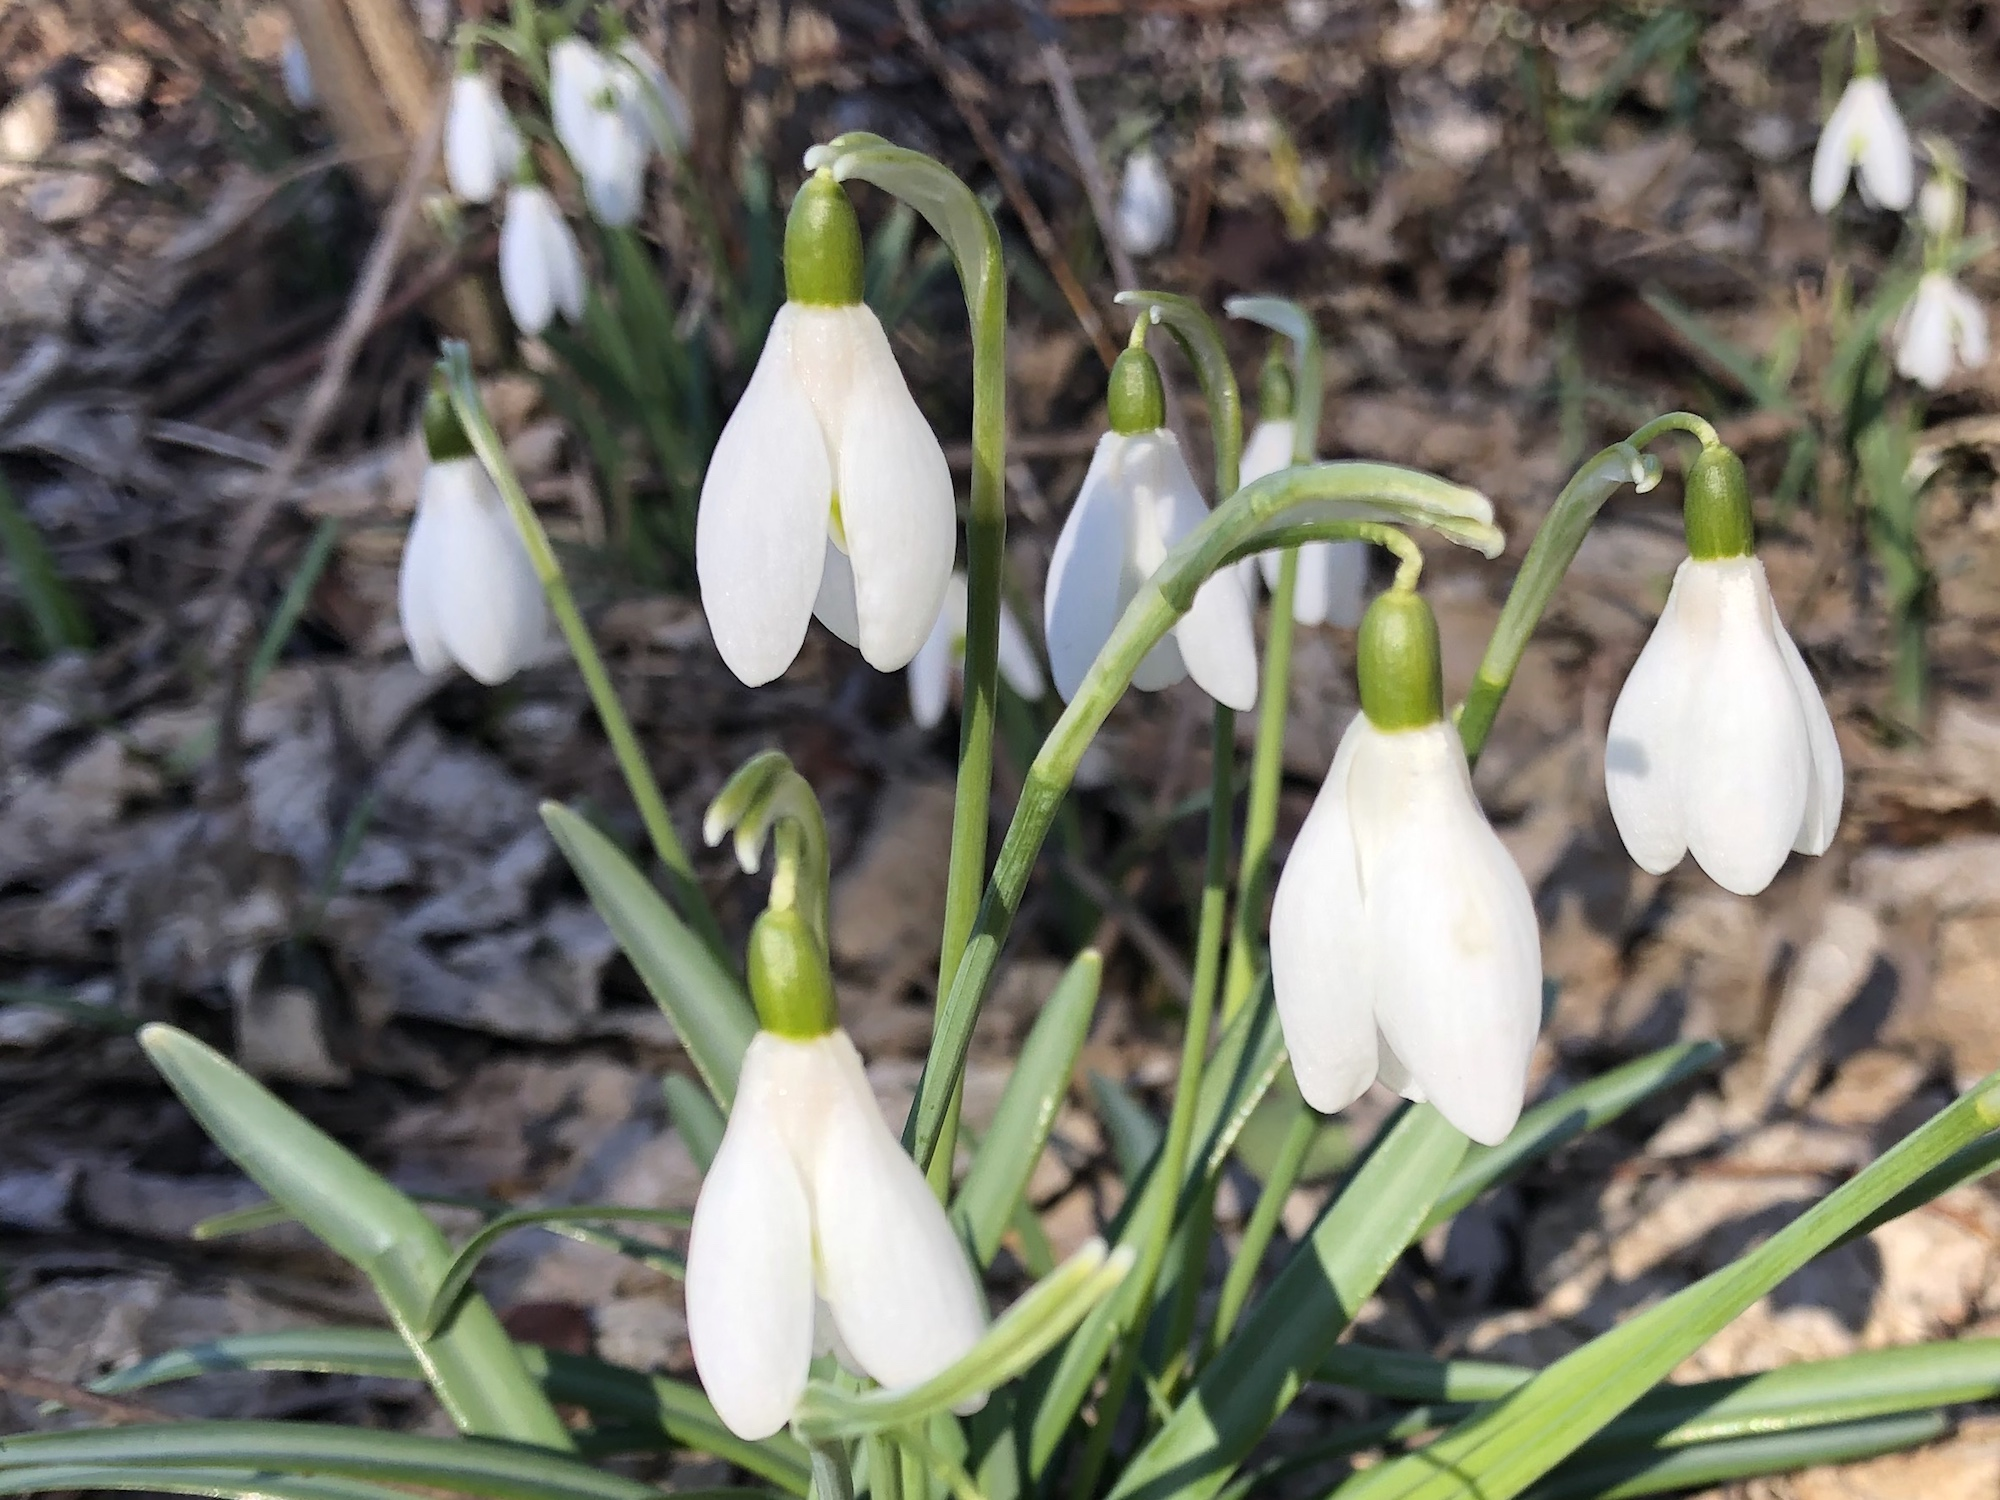 Snowdrops in woods between the Sycamore Tree on Arbor Drive and the bike path entrance to the Oak Savanna on March 15, 2020.